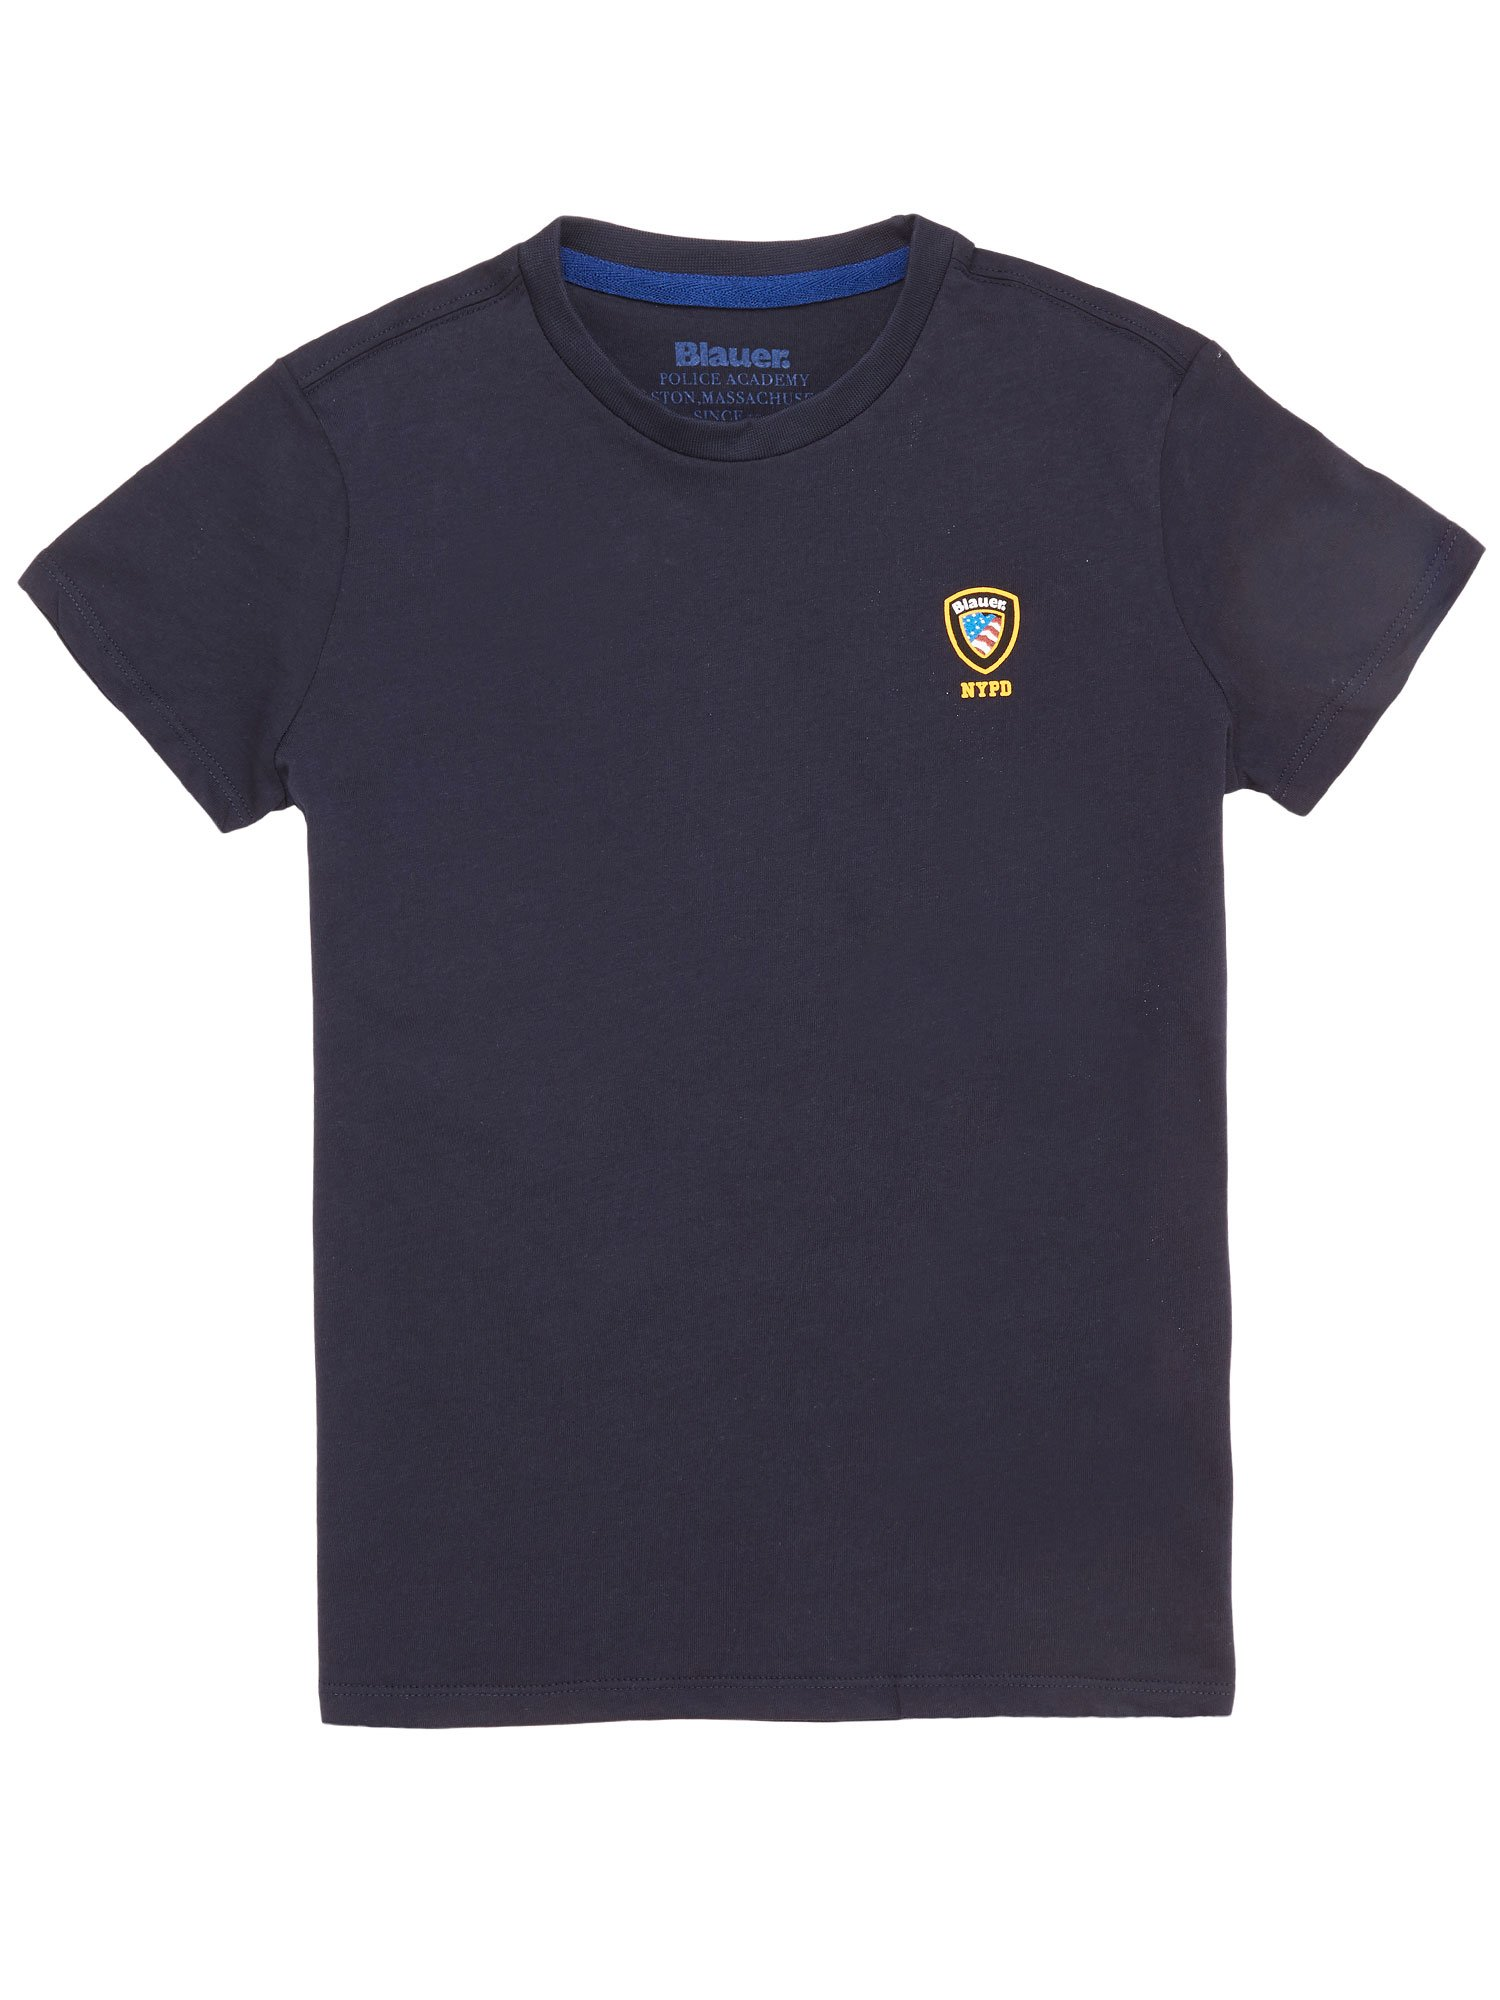 KID'S BLAUER NYPD SHIELD T-SHIRT - Blauer